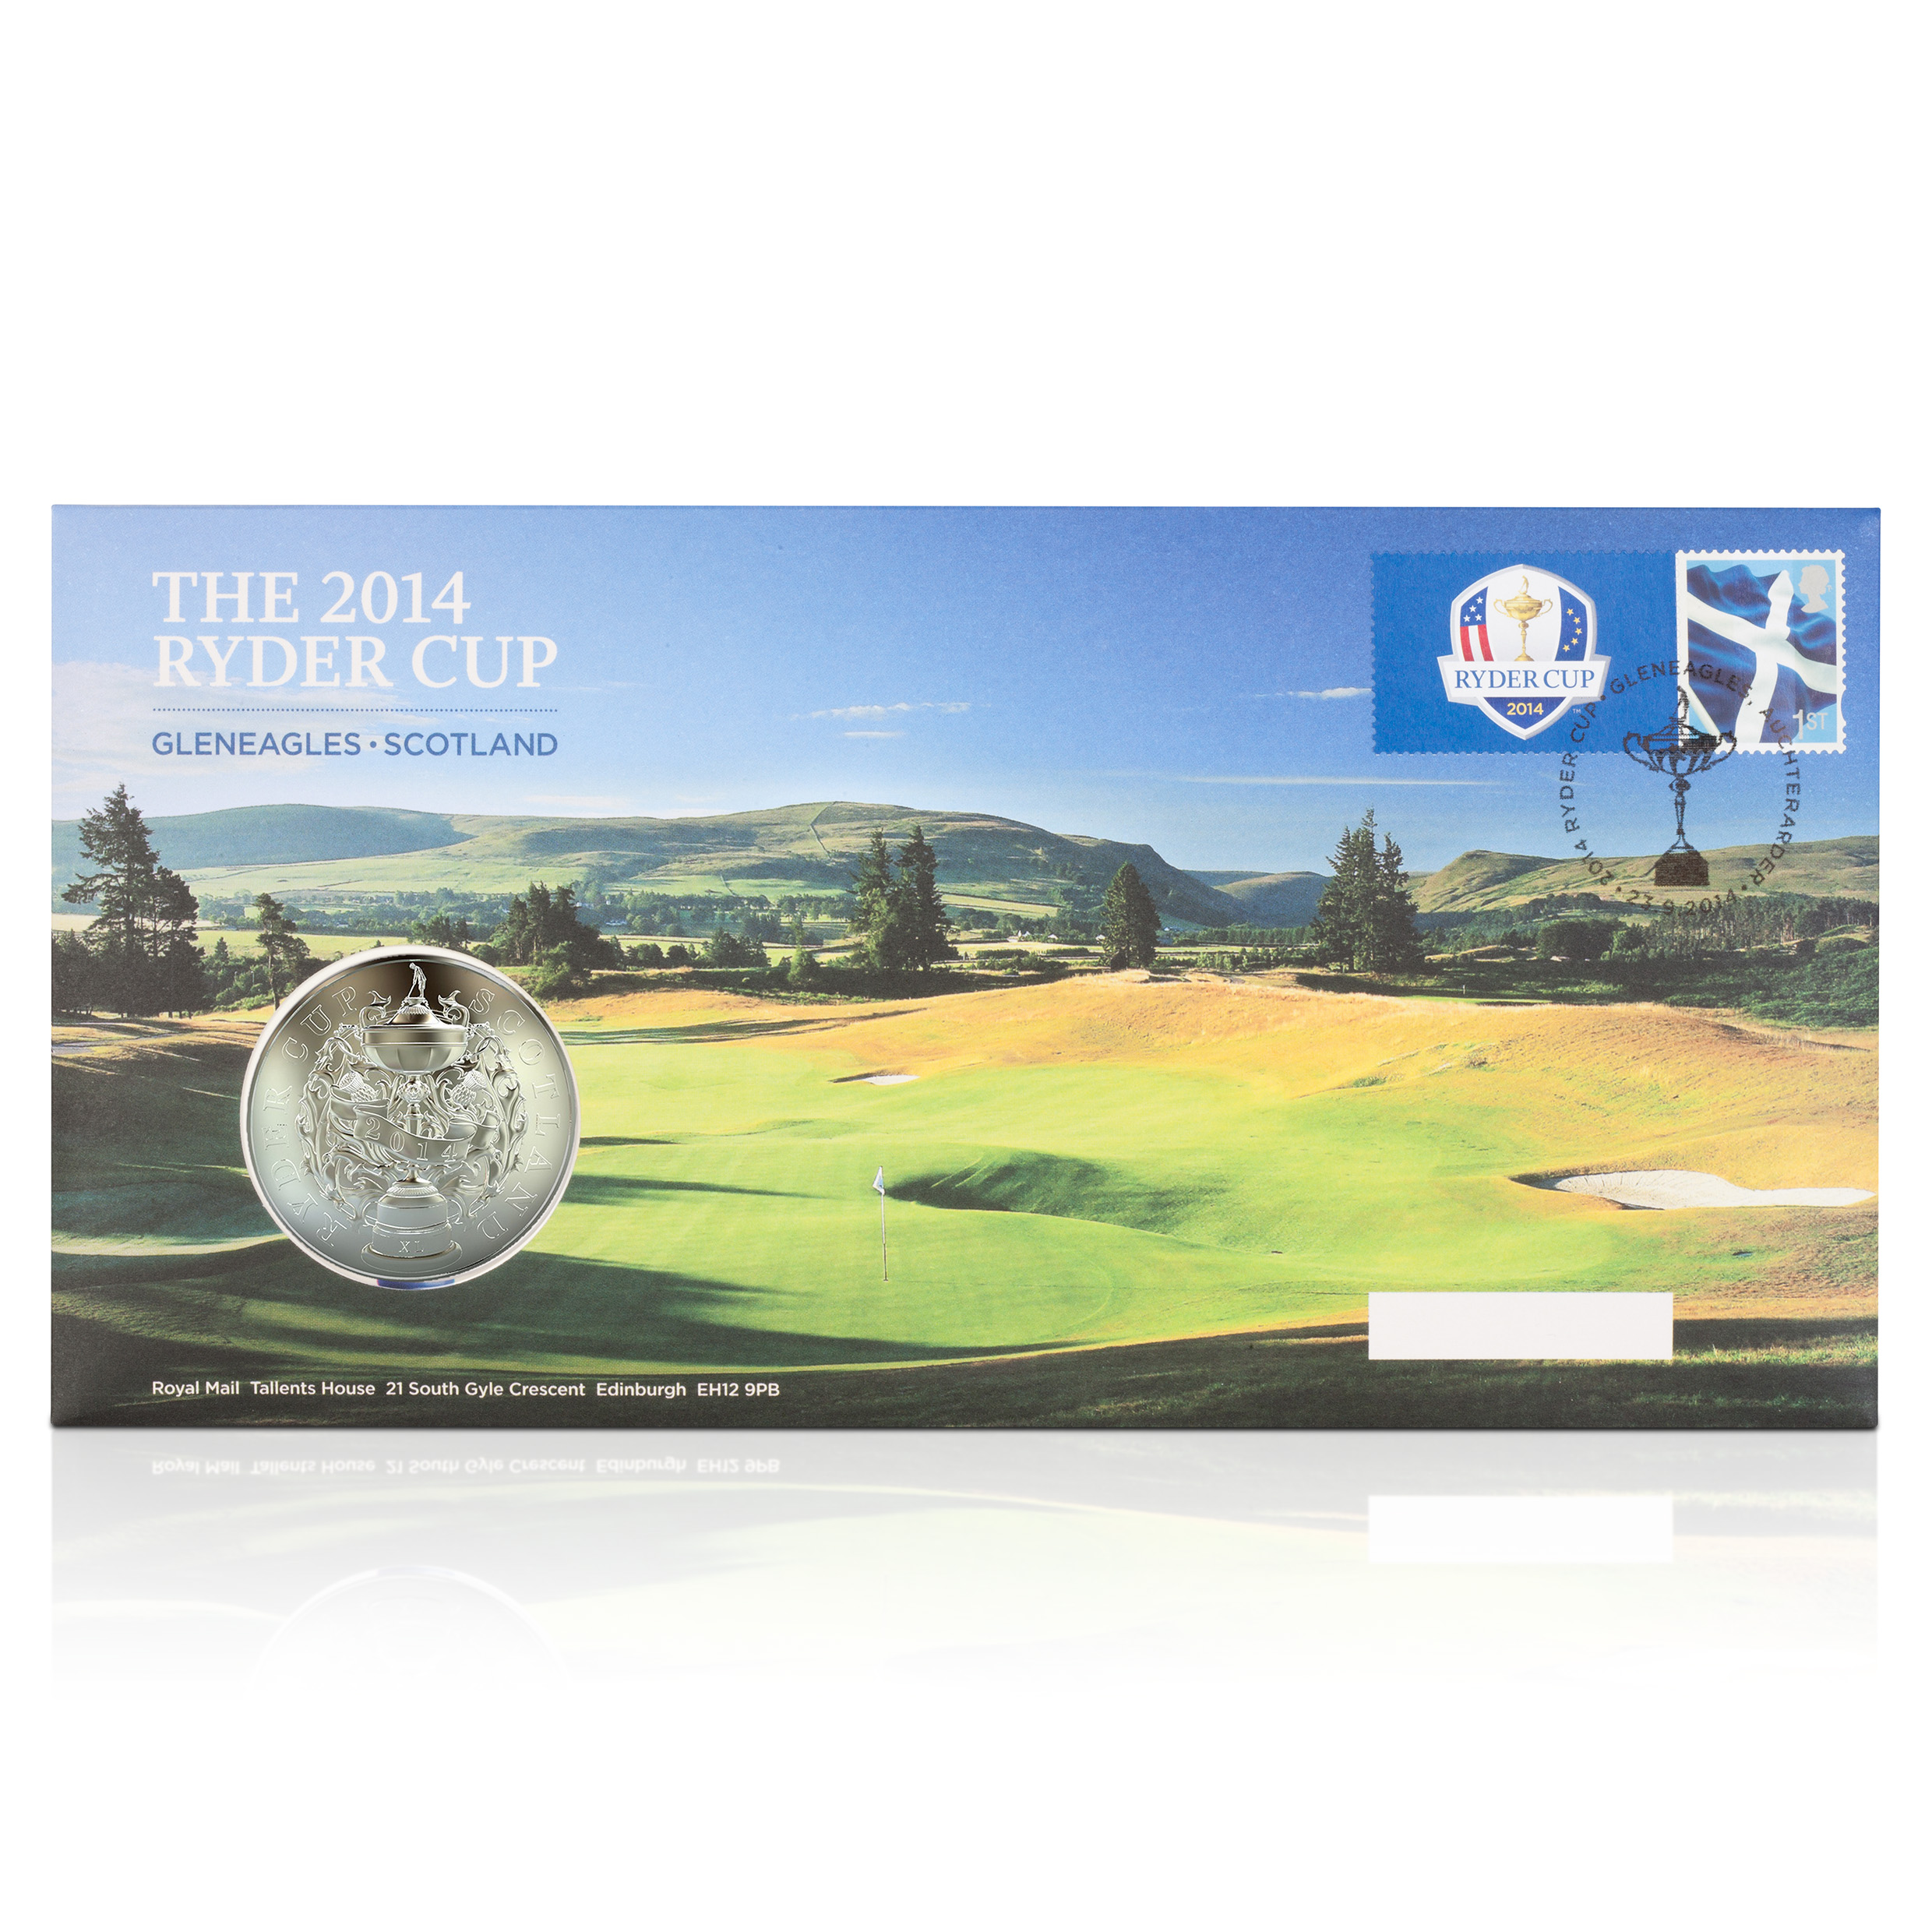 The 2014 Ryder Cup Royal Mail Postal Commemorative